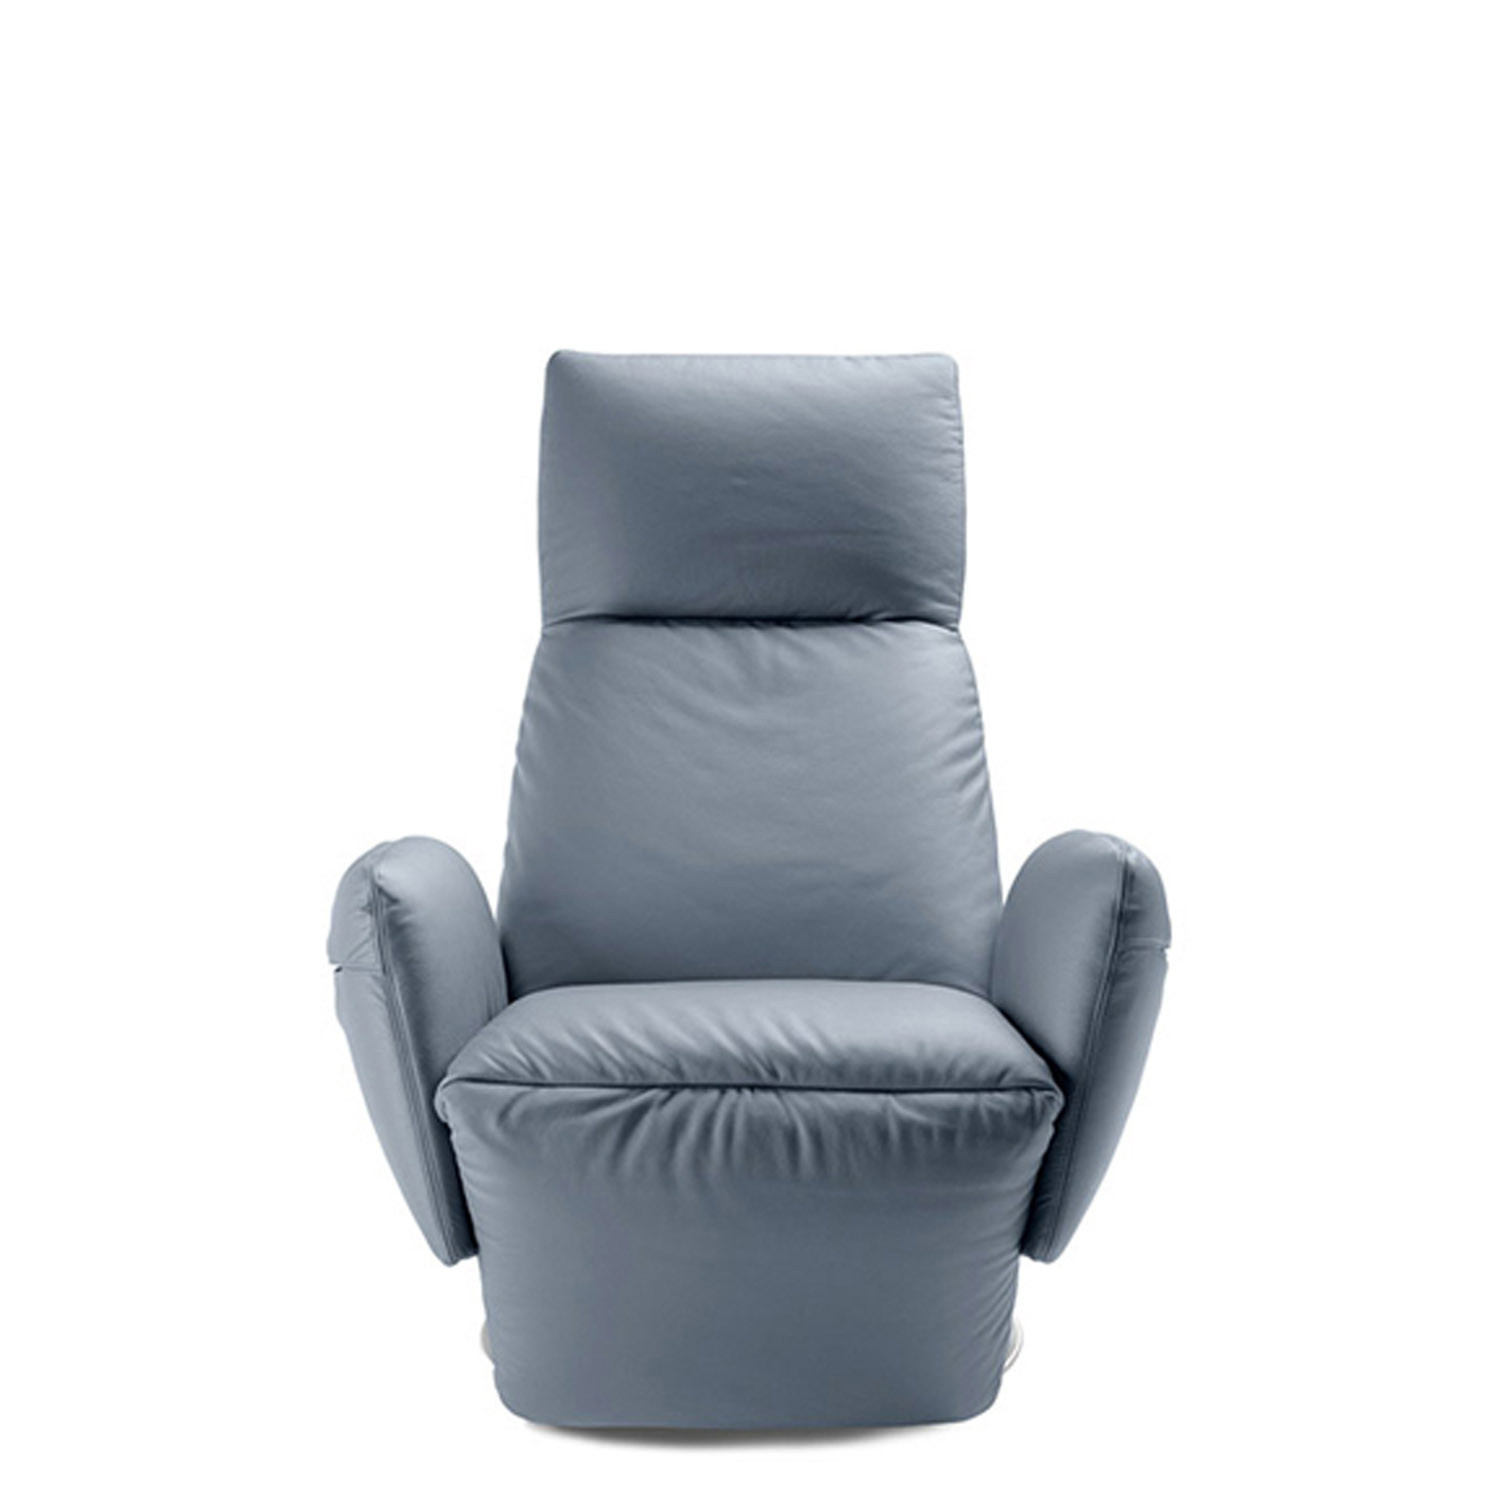 armchair pillow reclining accent chair recliner seating by poltrona frau